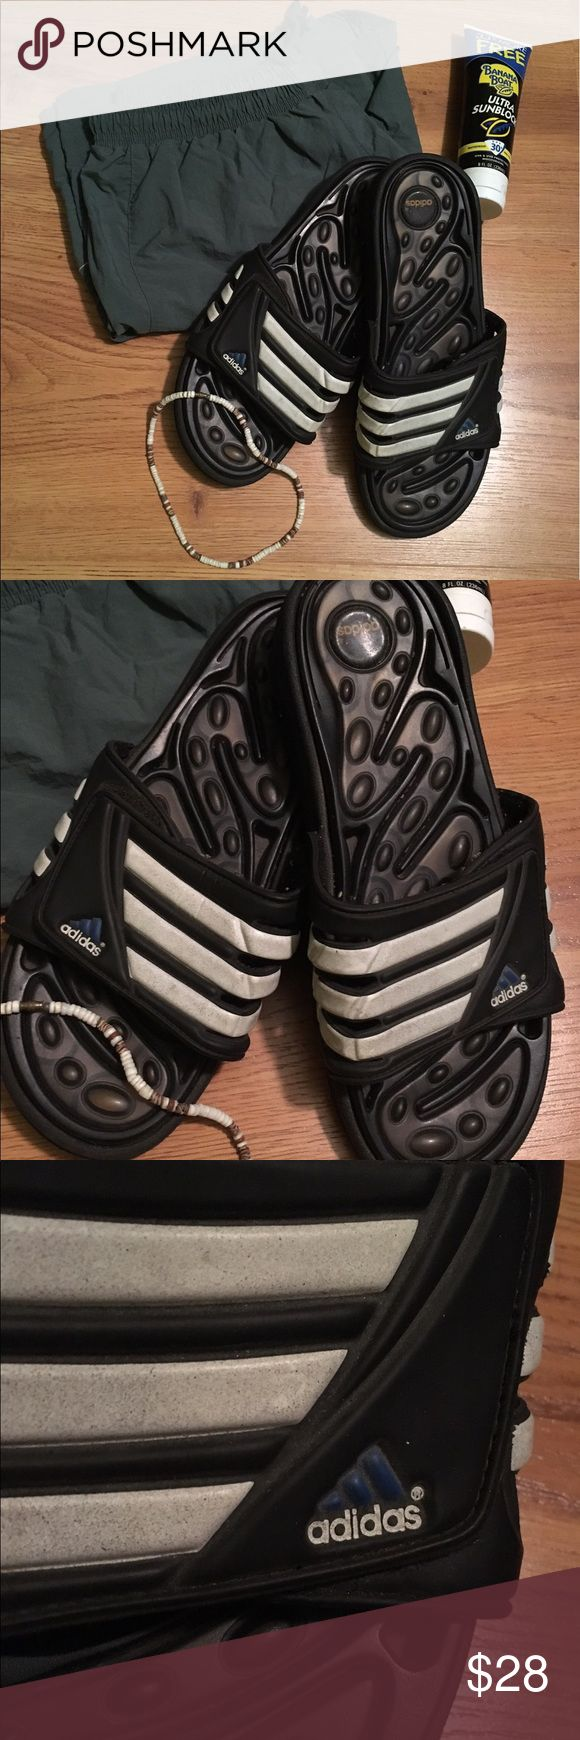 Men's Classic Adidas Sandals - 13 Authentic Men's Classic ADIDAS® Sip-On Sandals/Shower Shoes/House Slippers... ✨Gently Used - BARELY WORN✨ **EXCELLENT CONDITION** ... Adjustable Velcro for Perfect Fit... Size 13 ADIDAS Shoes Sandals & Flip-Flops